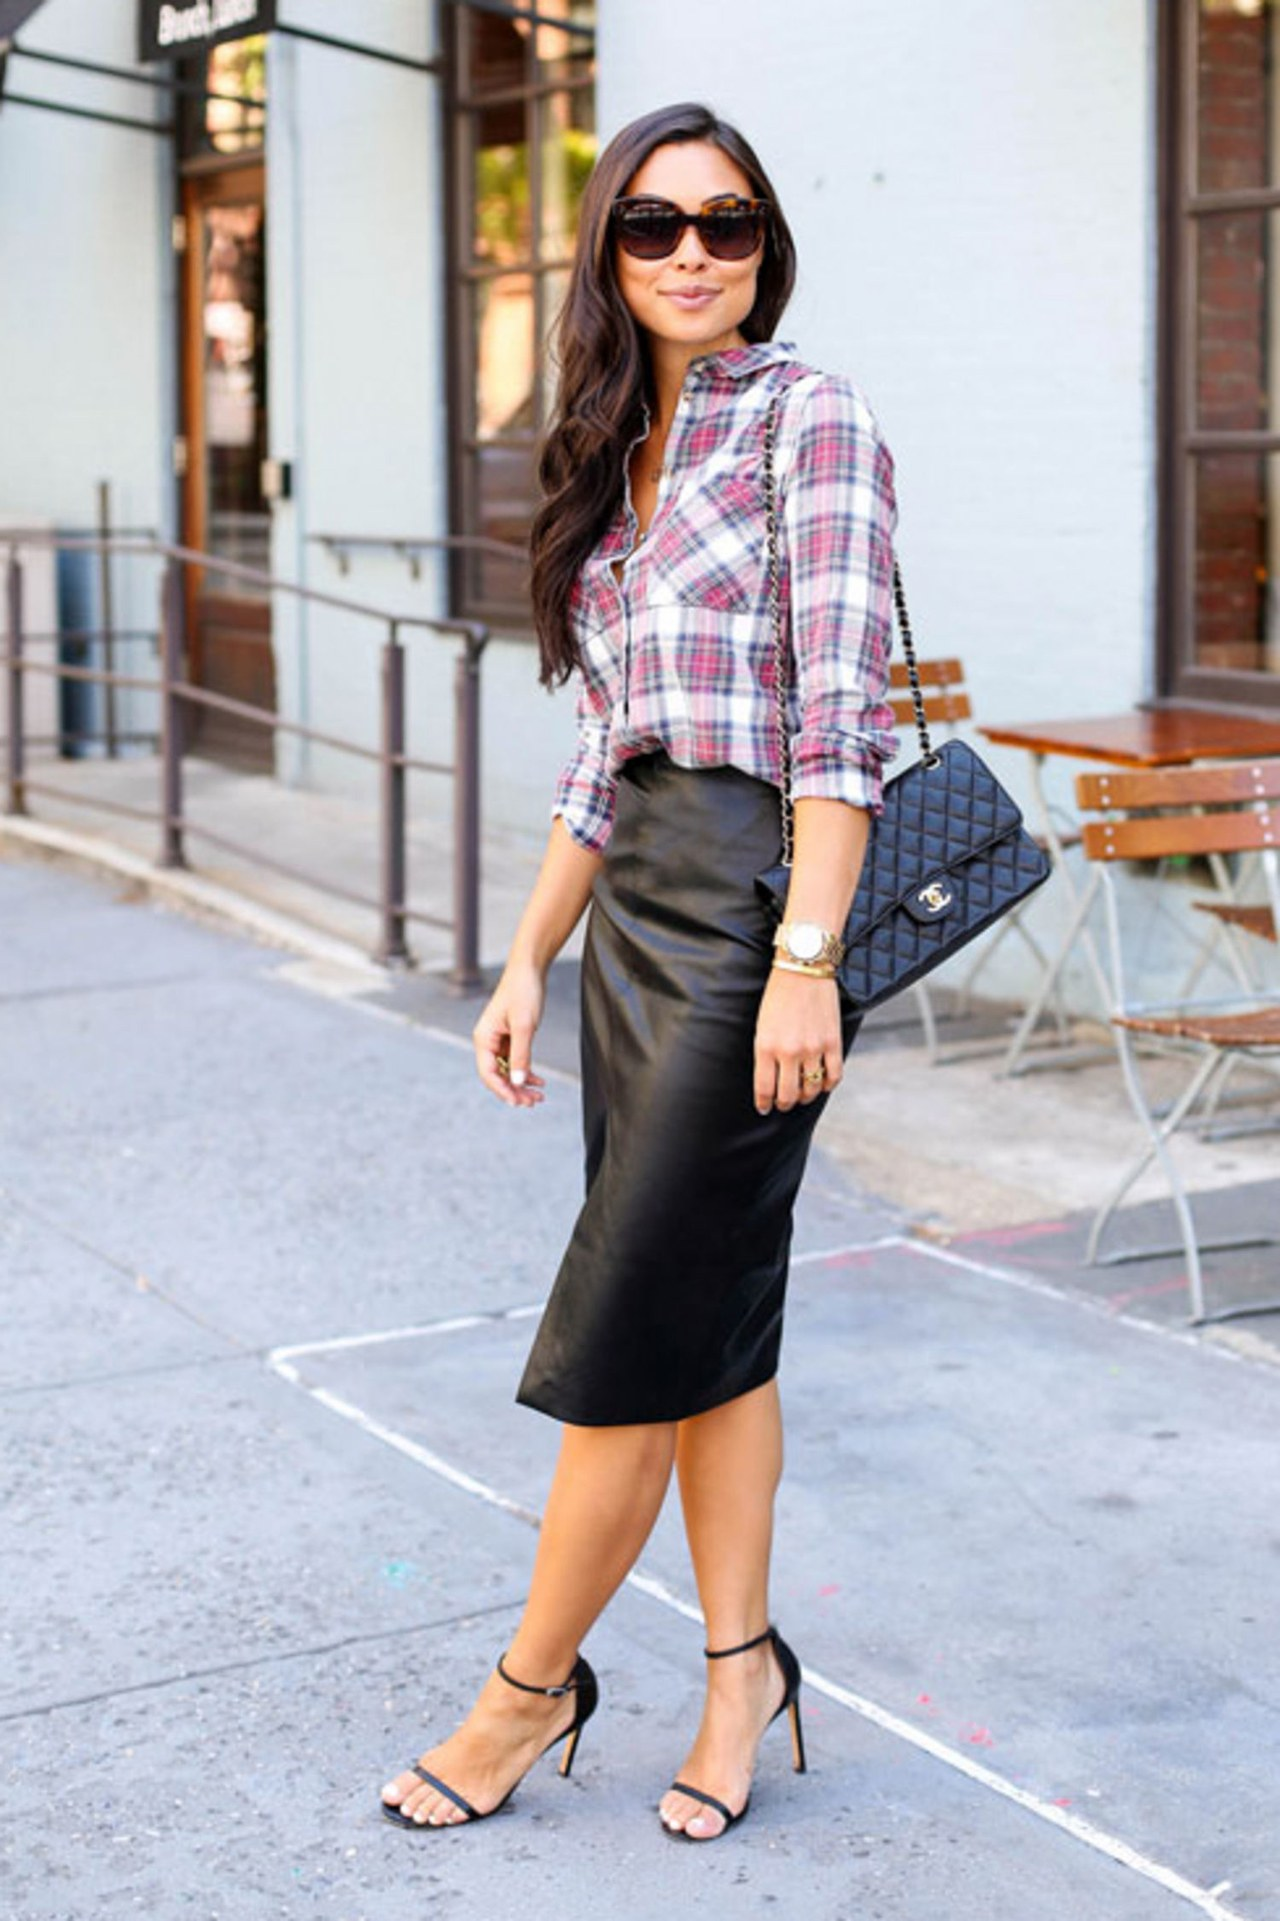 fashion-2015-09-work-office-outfit-pencil-skirt-with-love-from-kat-main.jpg